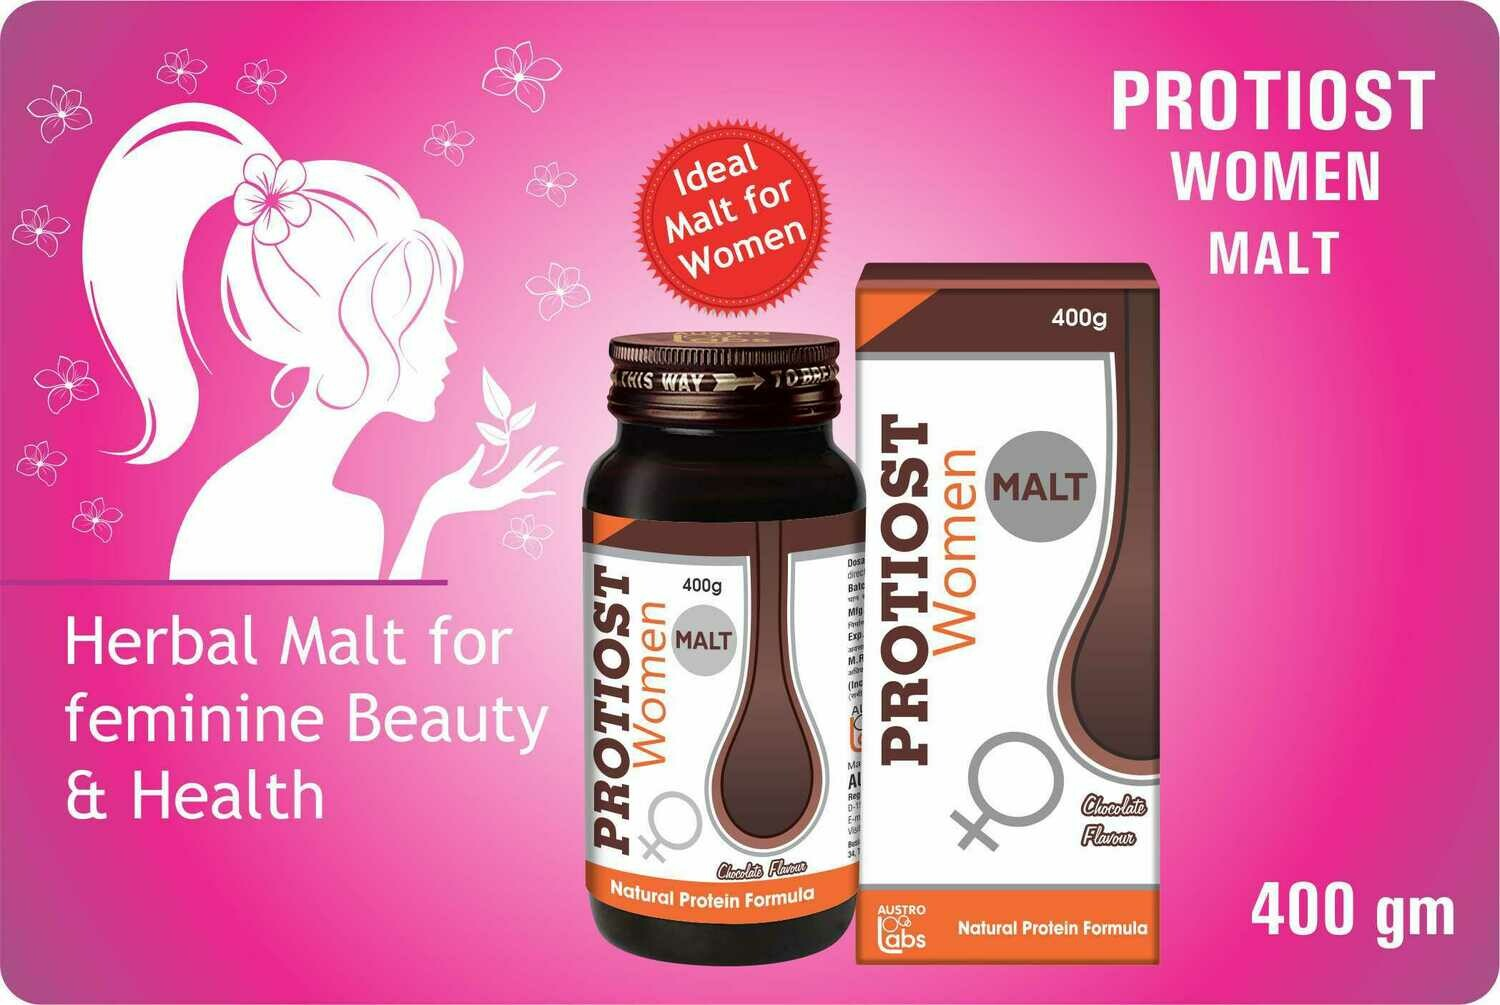 Protiost Malt for Women